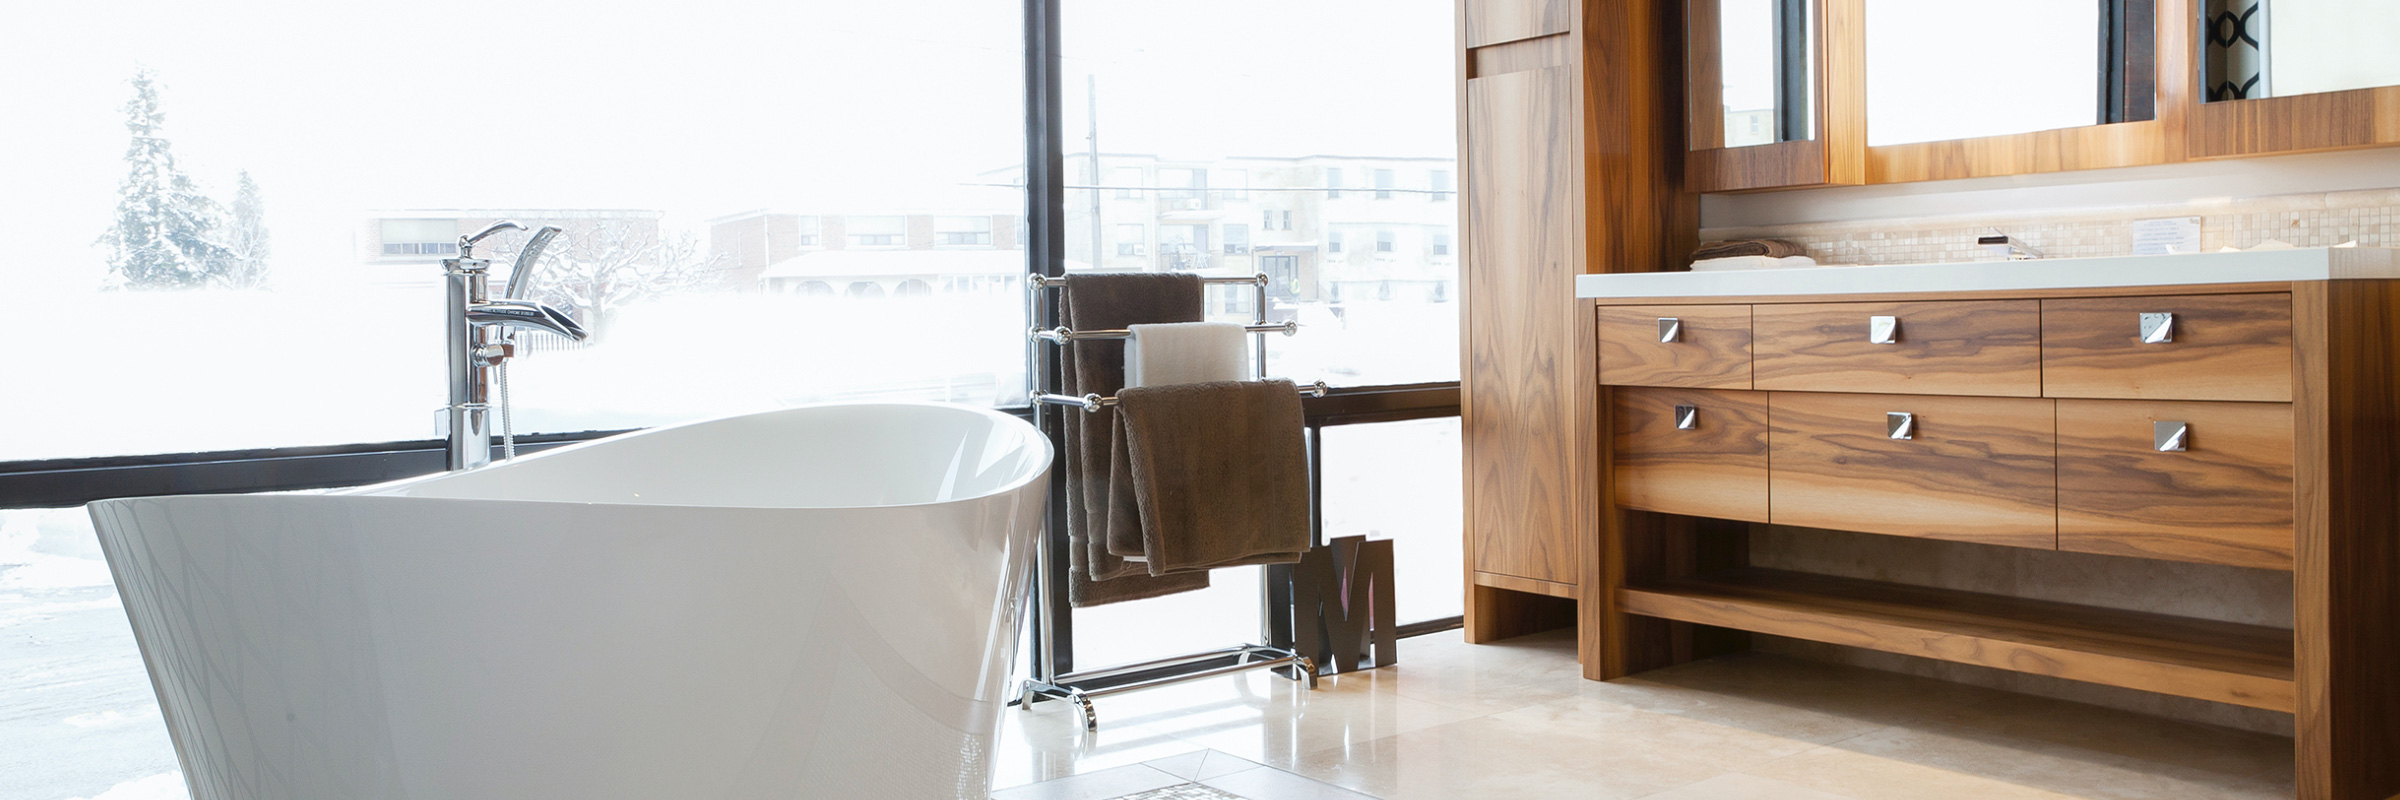 Bathroom samples in Kitchen and Bath Showrooms